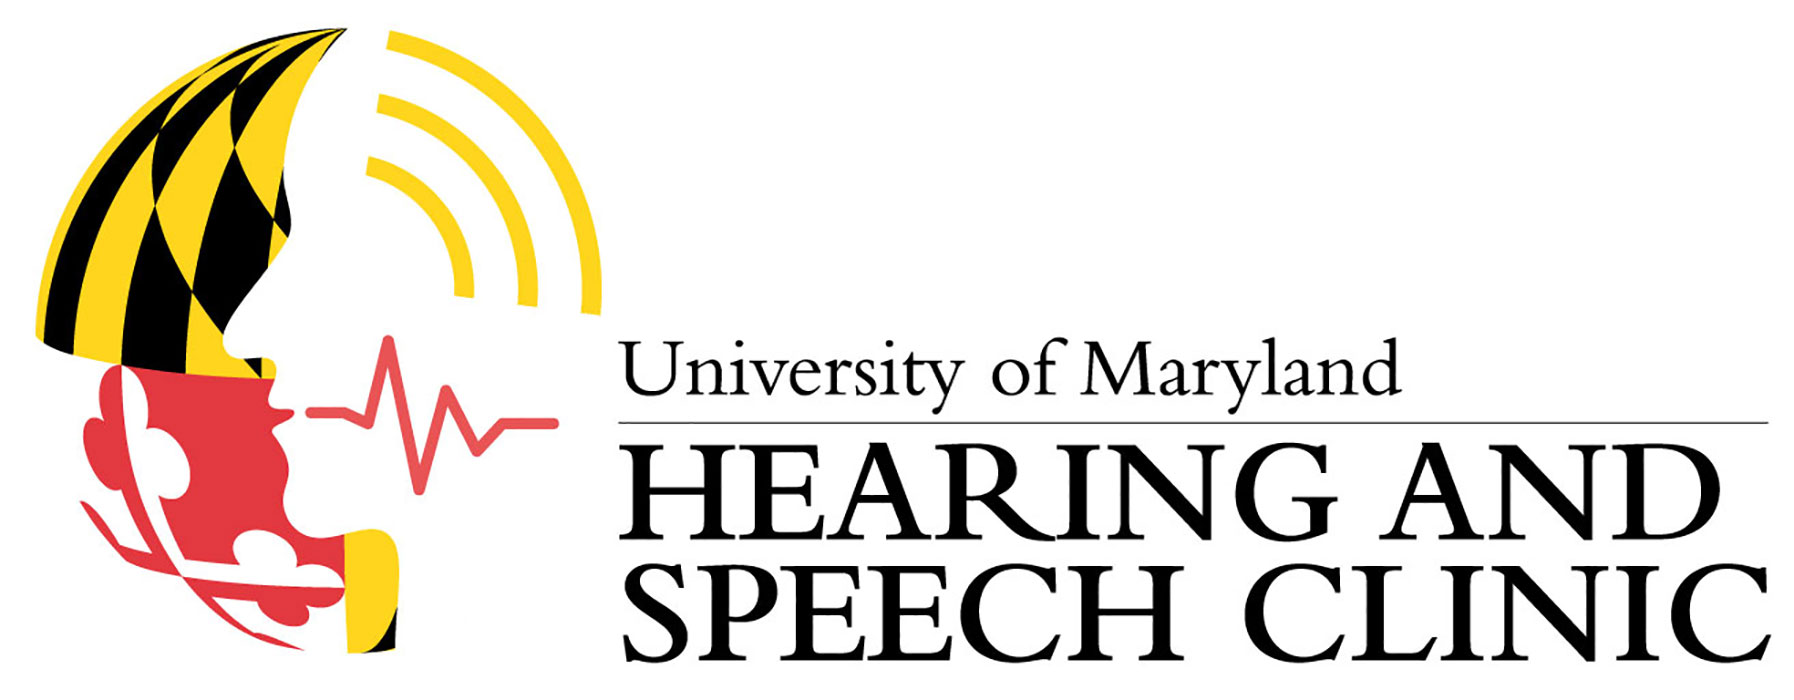 University of Maryland Hearing and Speech Clinic Logo